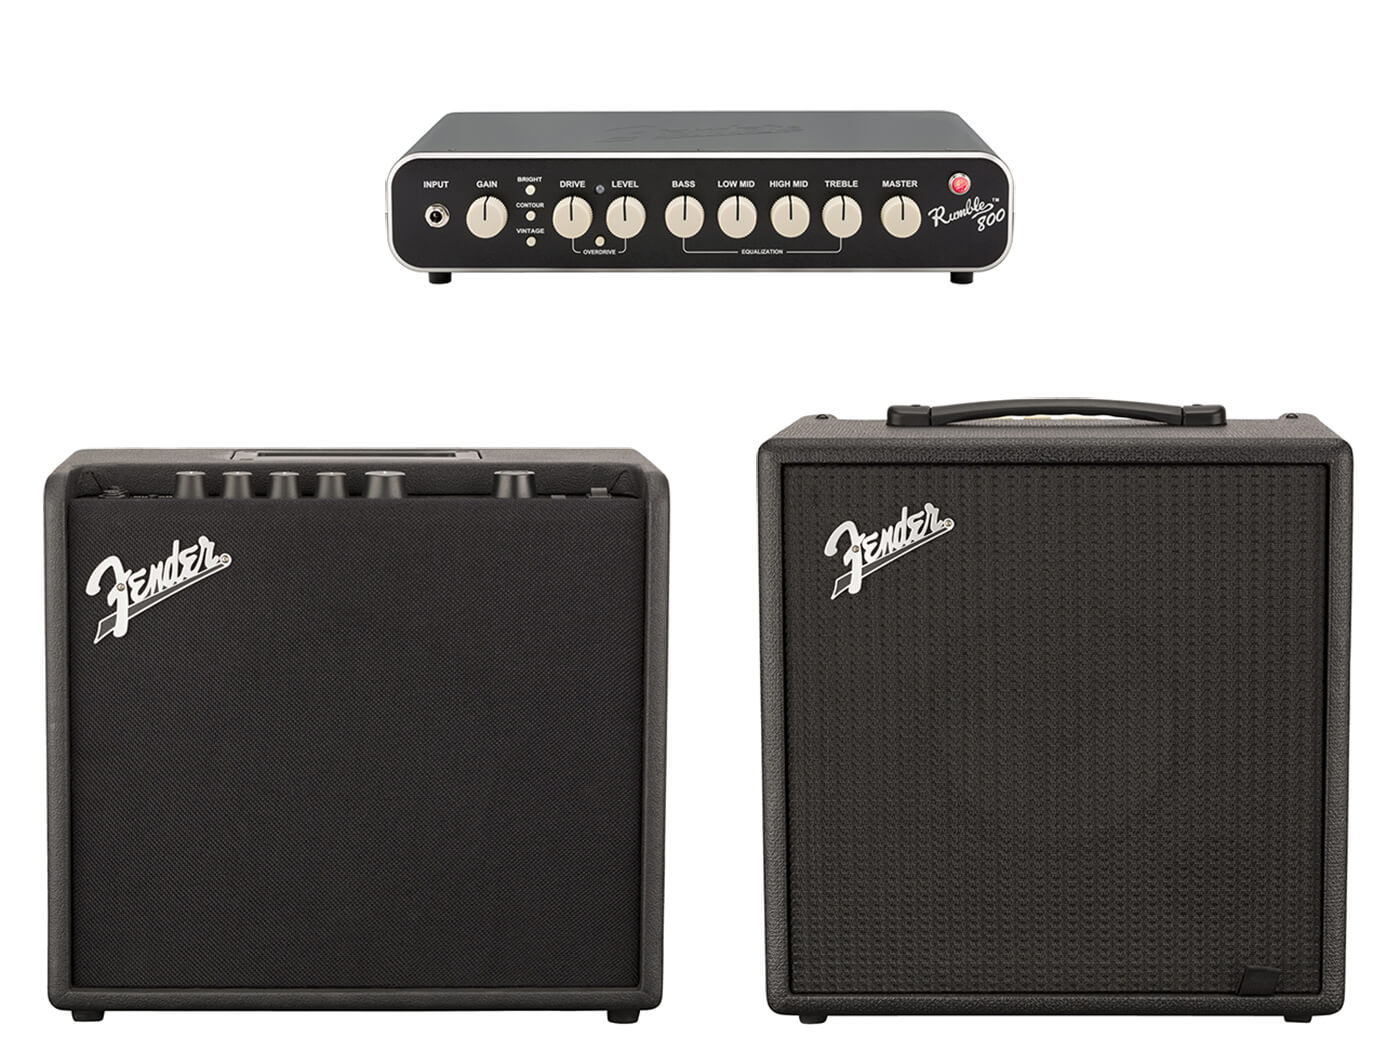 fender launches new guitar bass amplifiers. Black Bedroom Furniture Sets. Home Design Ideas